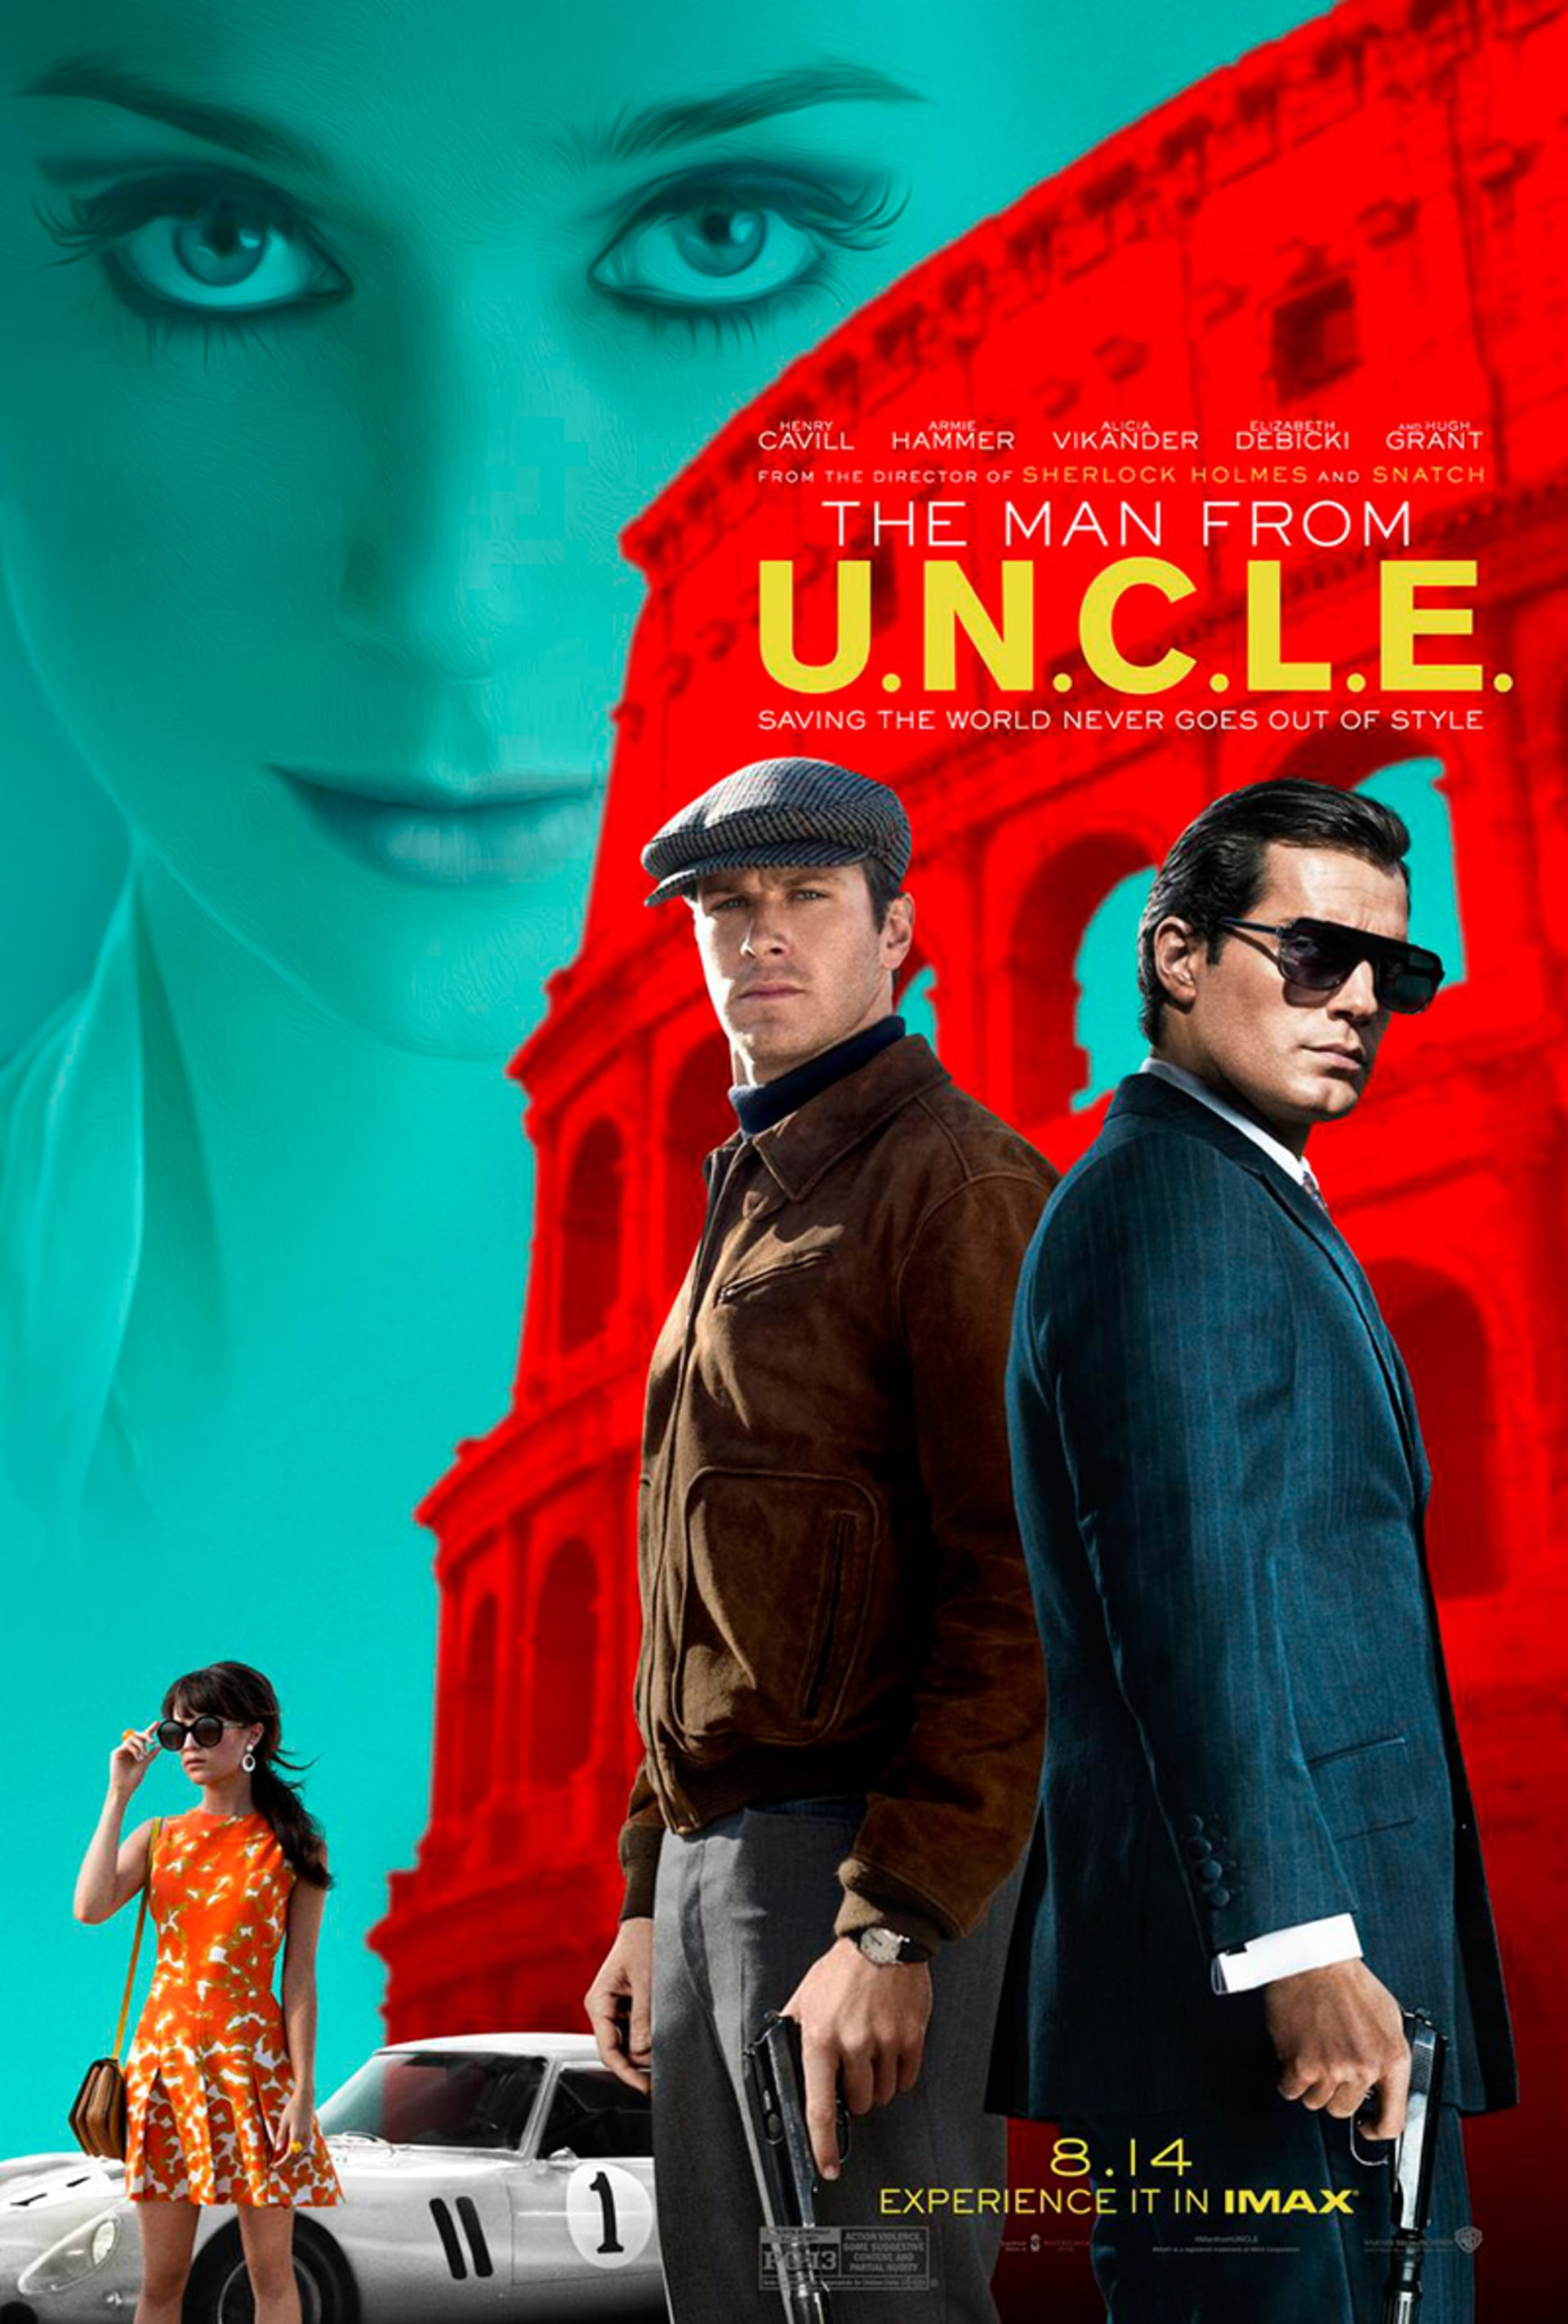 The Man From U.N.C.L.E. - Poster 1